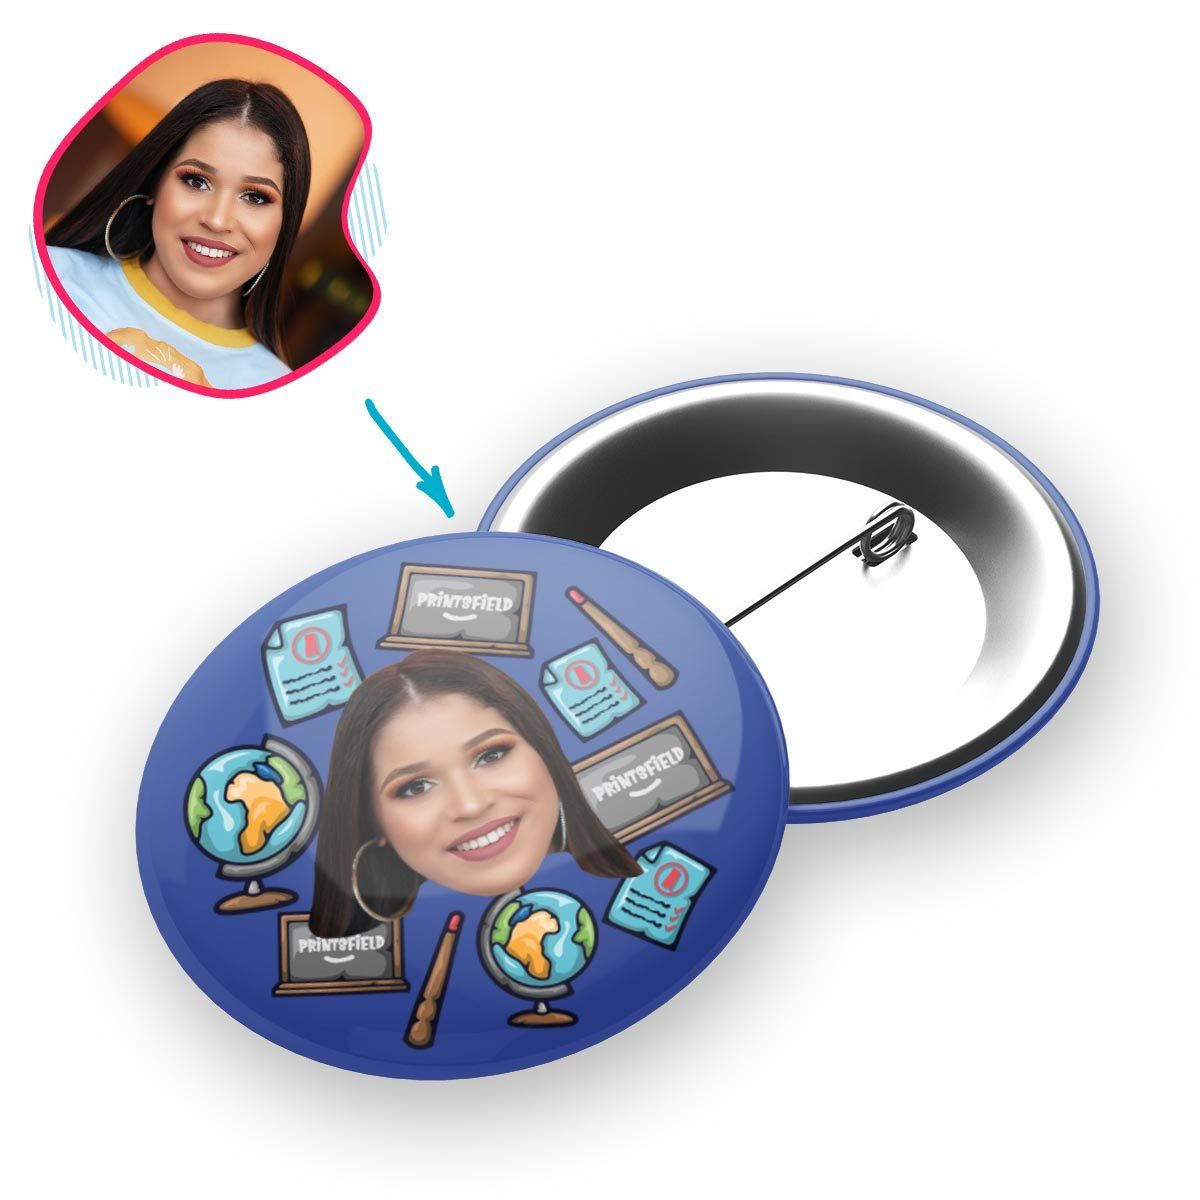 Darkblue Teacher personalized pin with photo of face printed on it